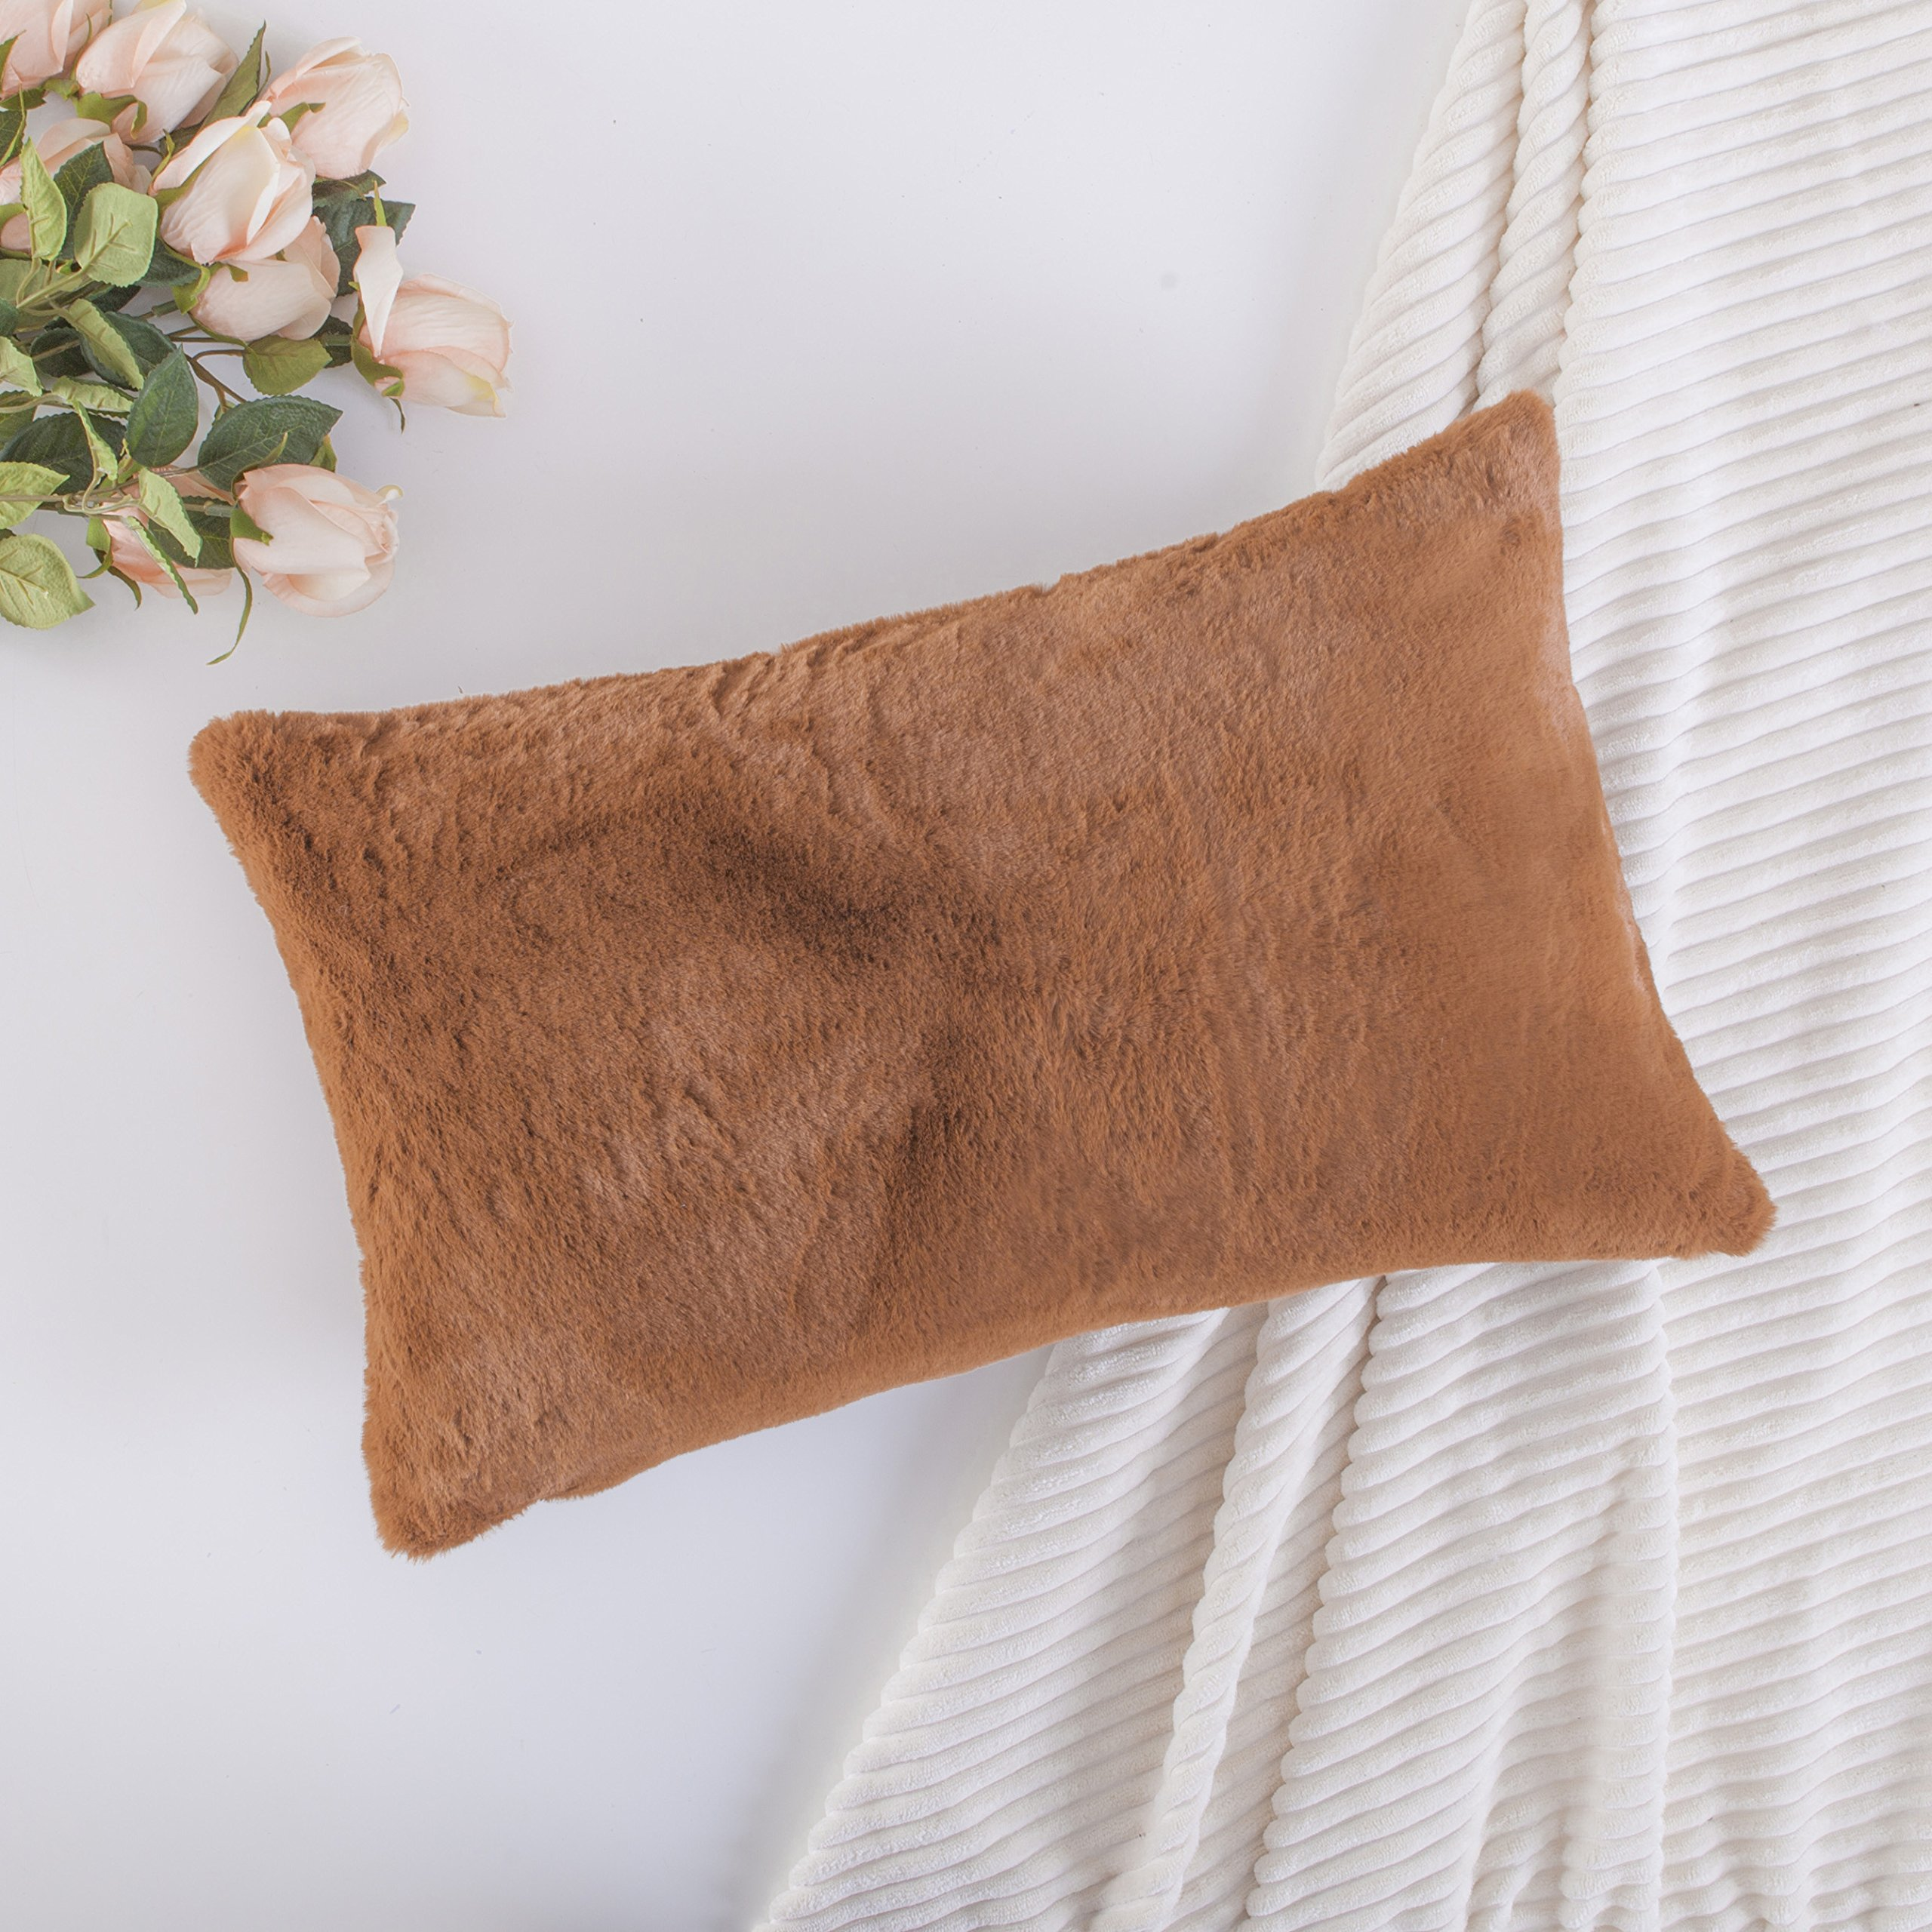 Home brilliant plush fluffy sheepskin fur suede oblong accent throw pillowcase for sofa cushion cover pillow not included 1 pc 12 x 20 inch brown